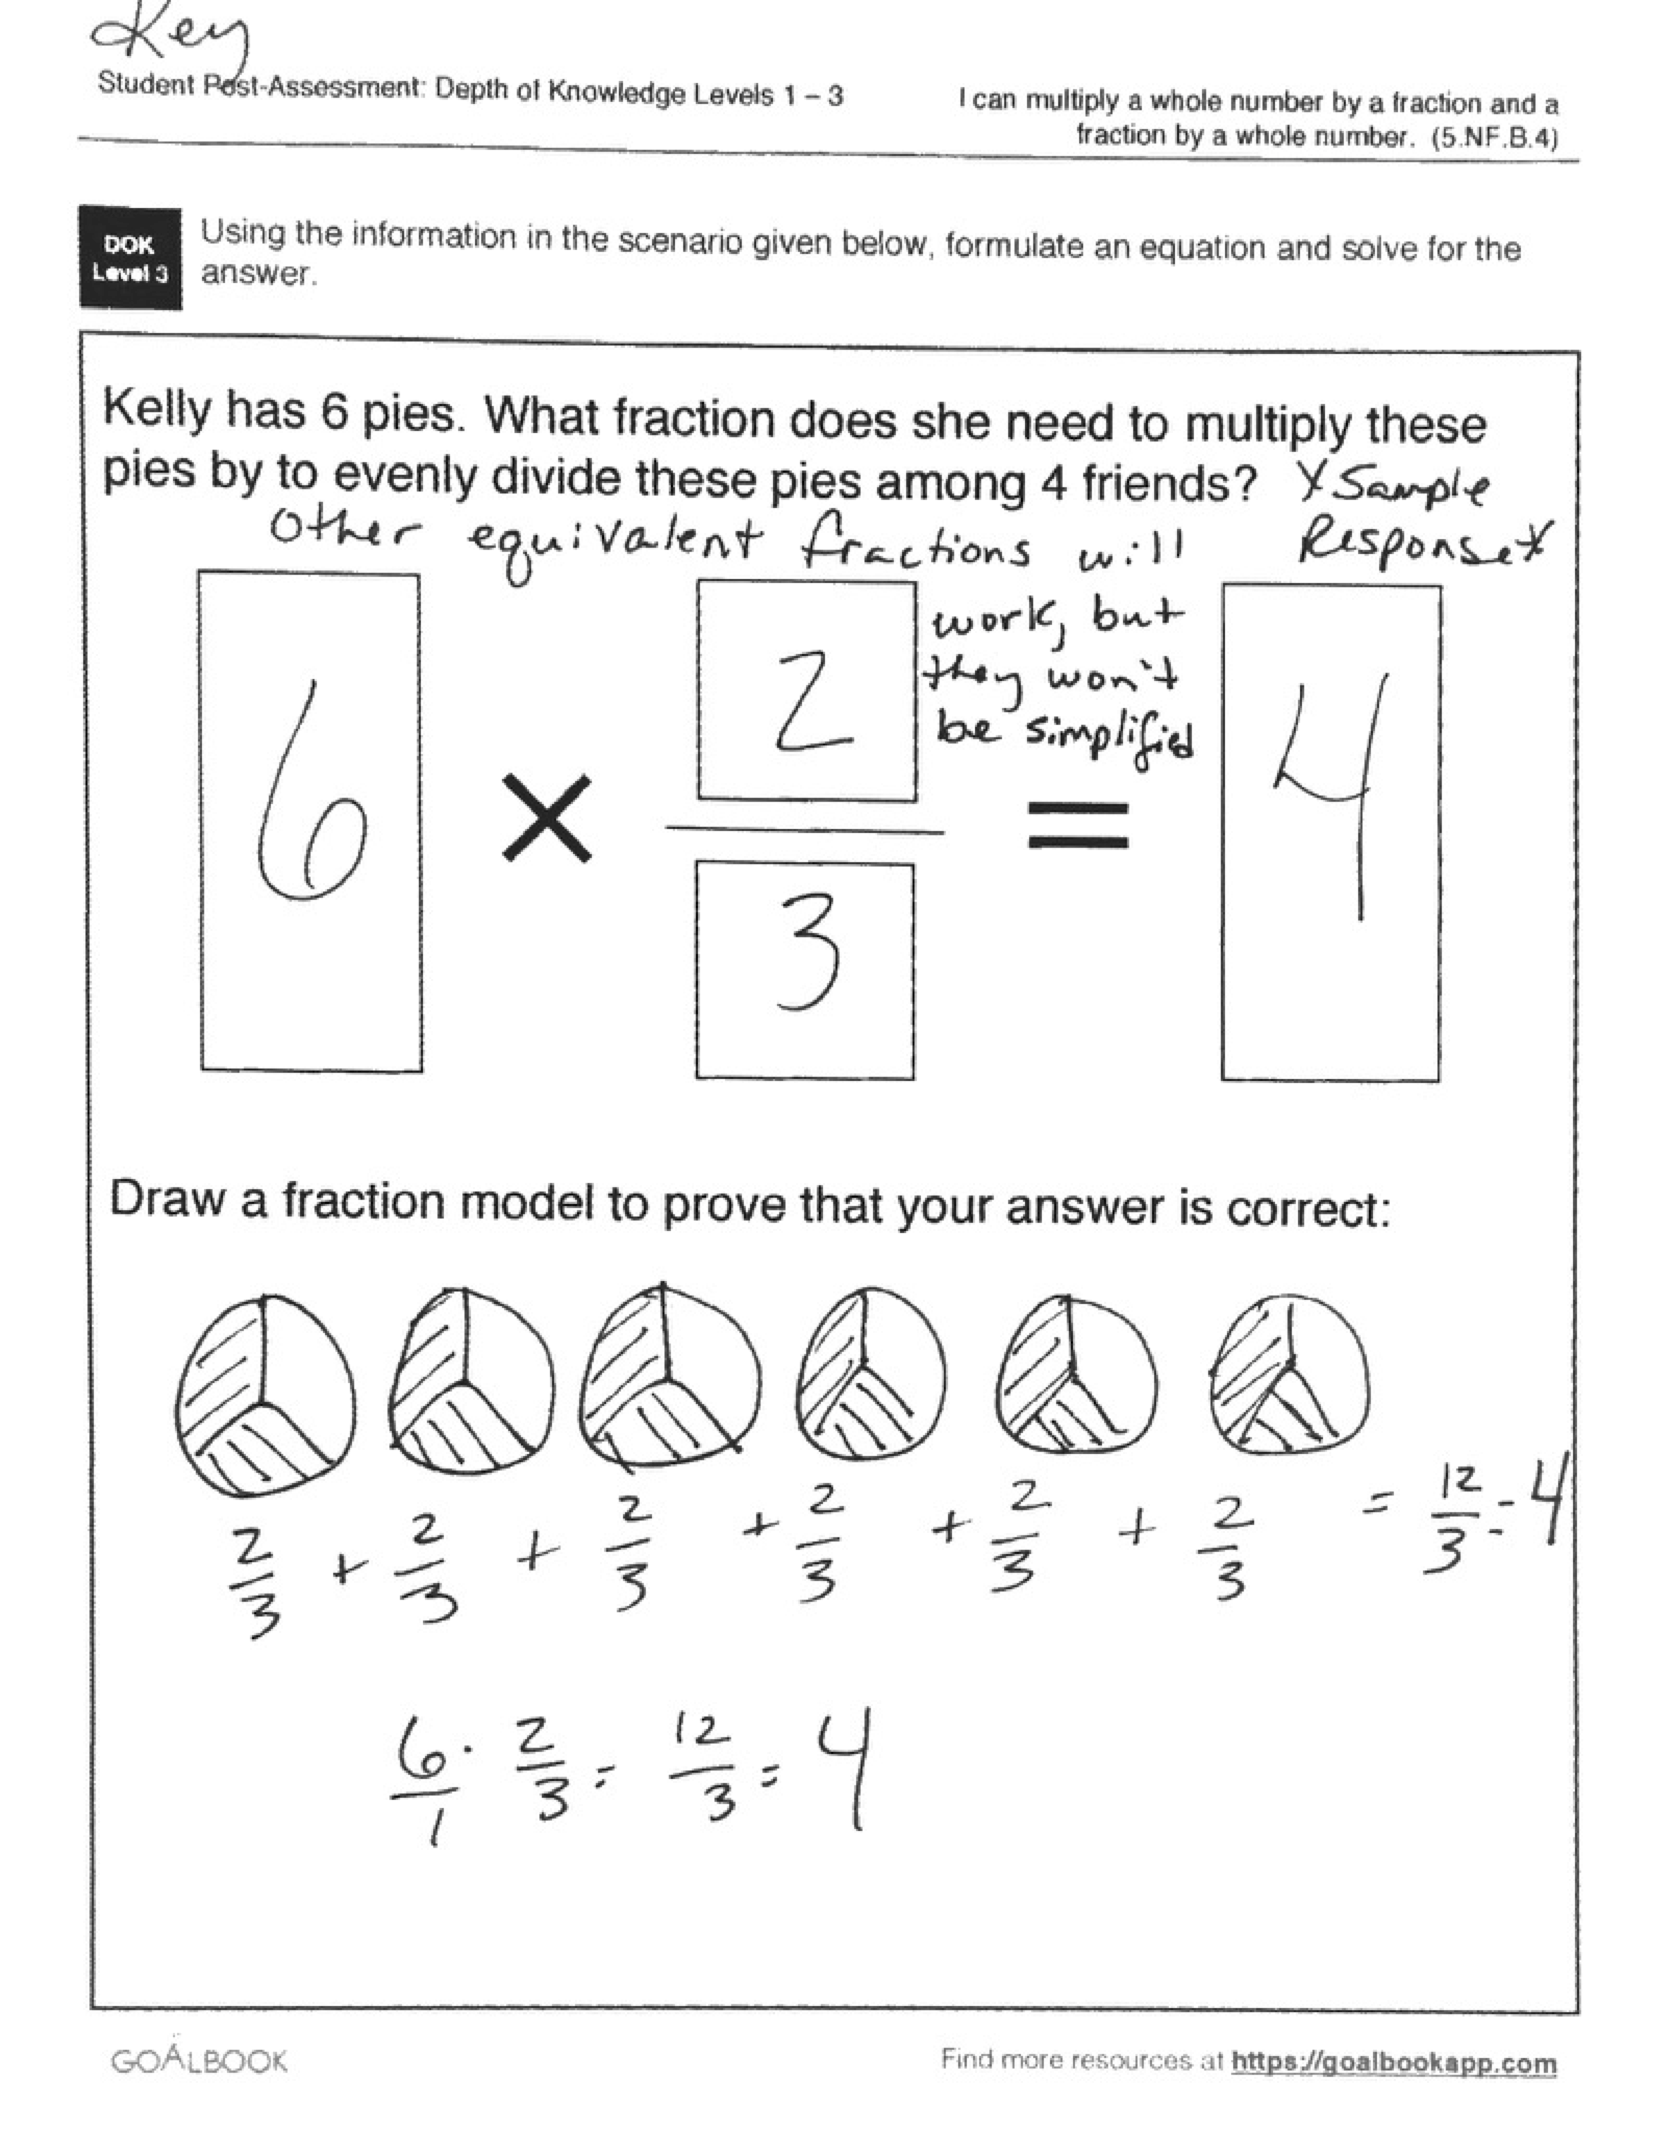 5 Nf 4 Multiplication With Fractions